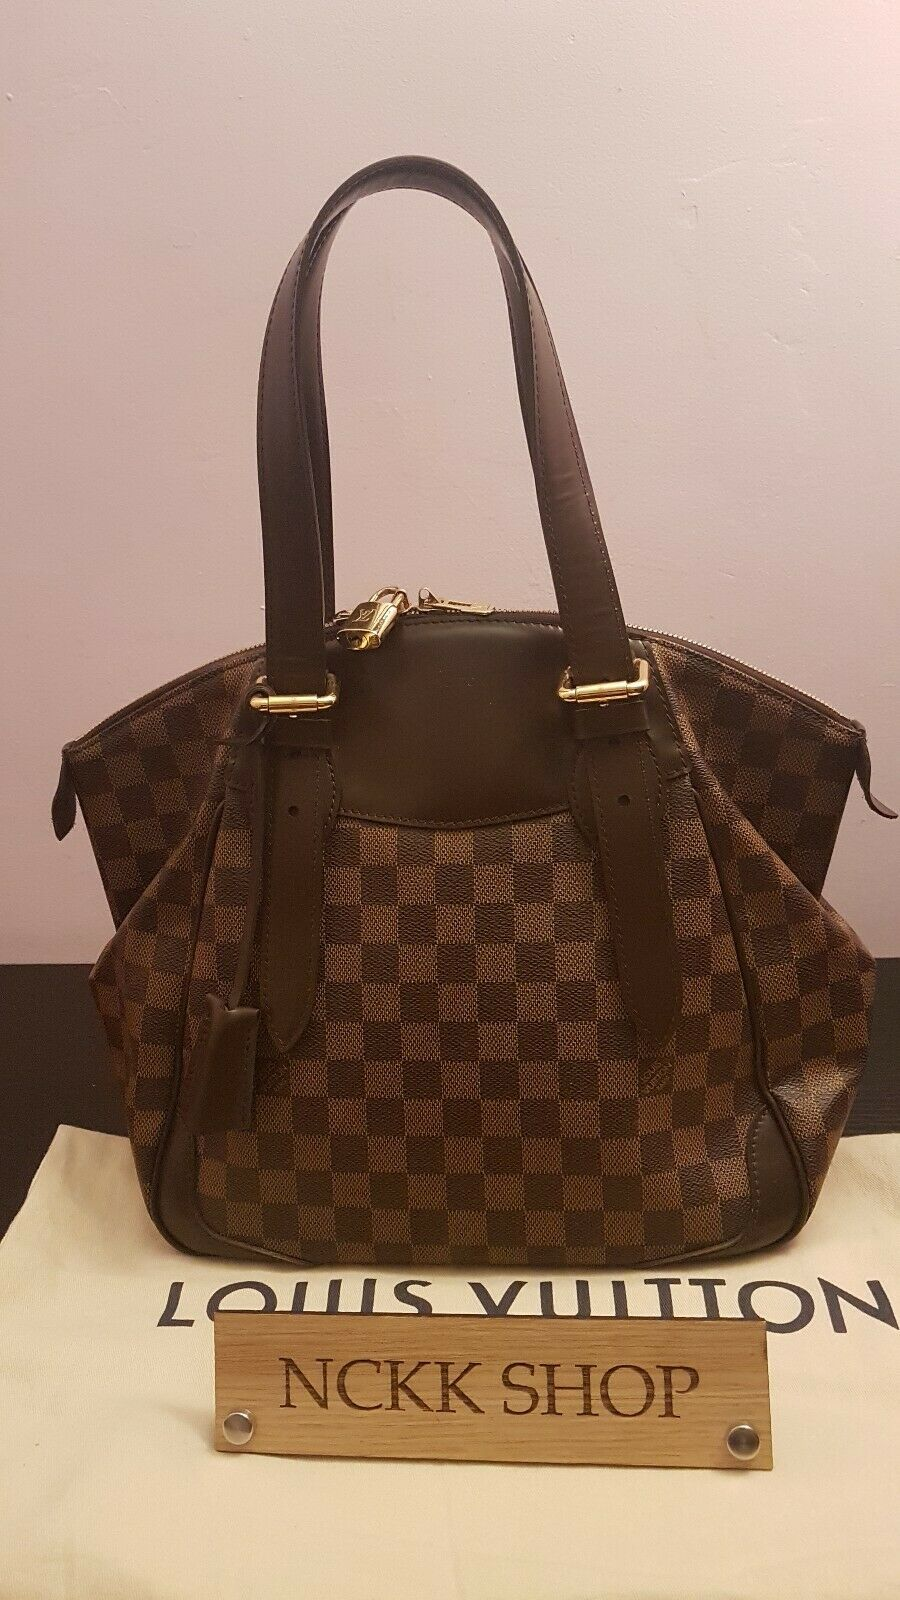 Authentic Louis Vuitton Verona MM Damier Ebene Canvas Schultertasche - 1.045.11,Kaufpreis 1,05,datum 01.07.2020 22:12:38,Website quoka.de